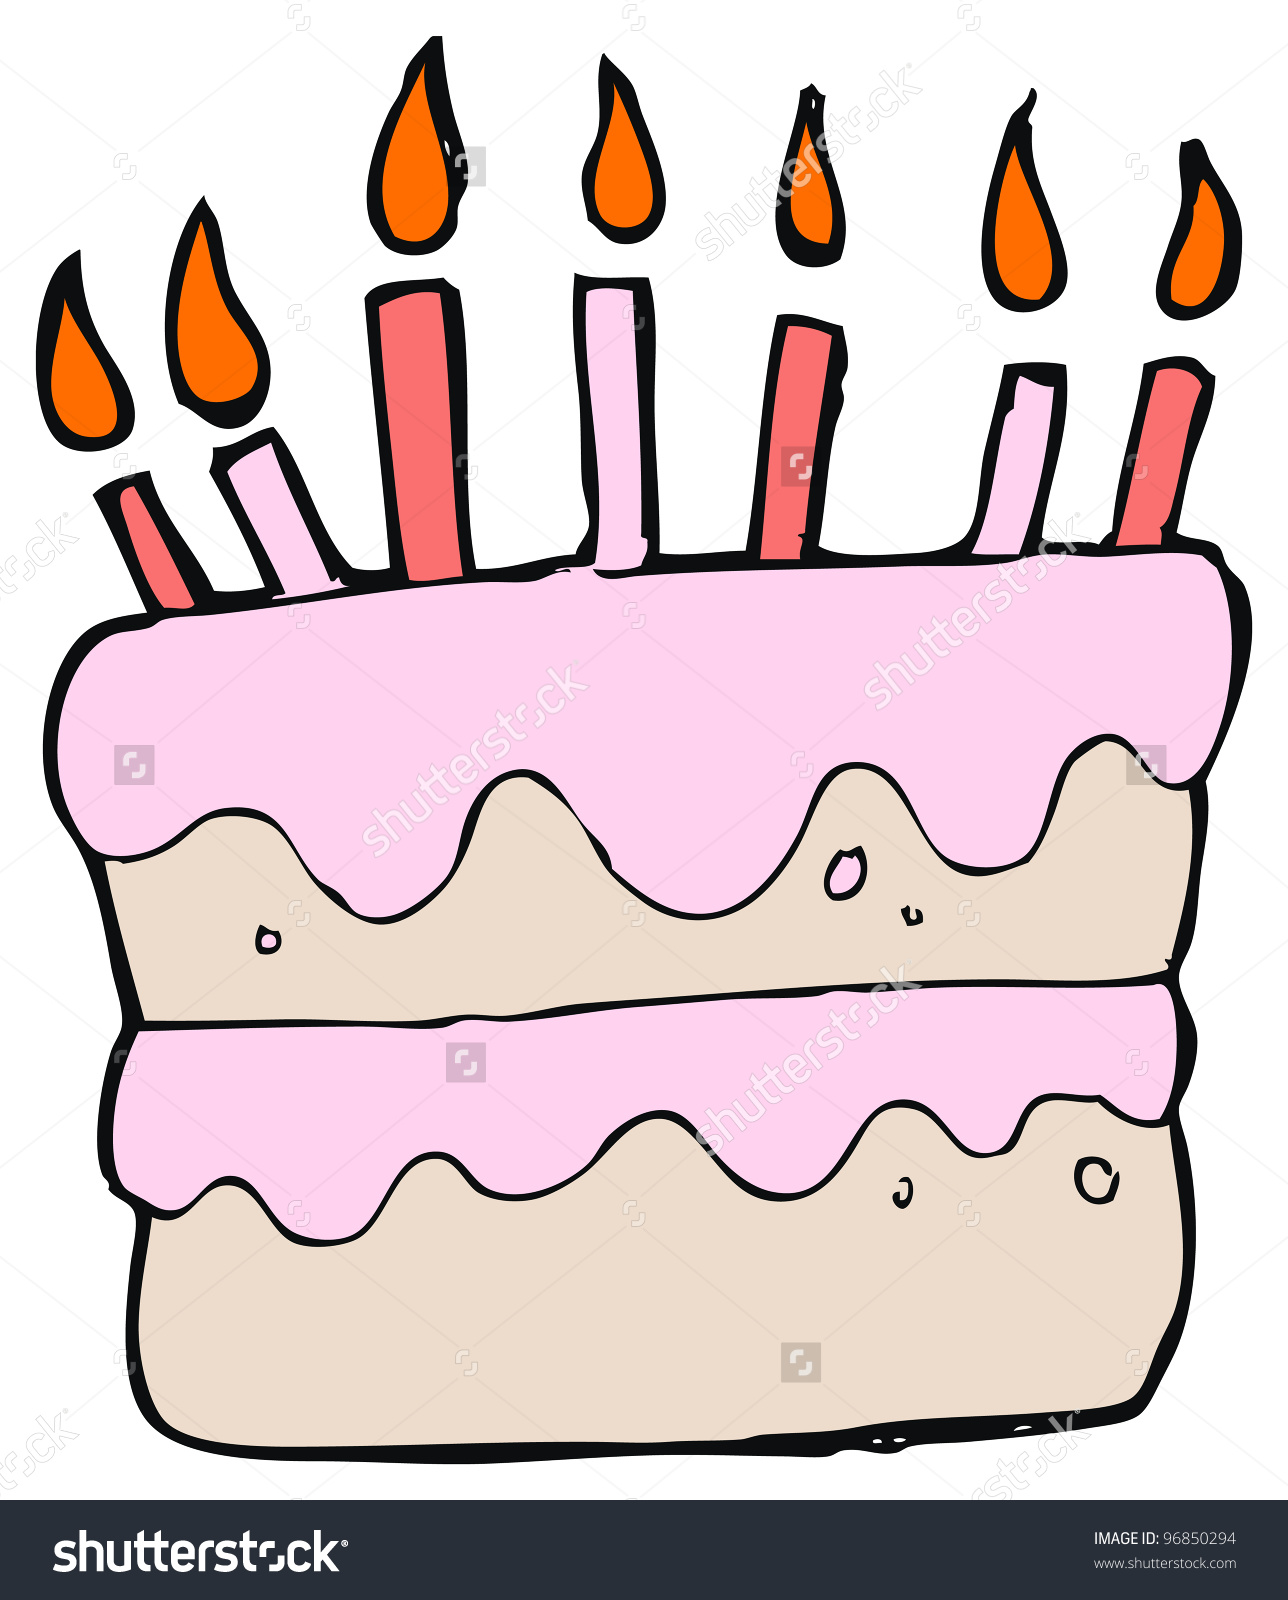 Cake Drawing Template At Getdrawings Com Free For Personal Use